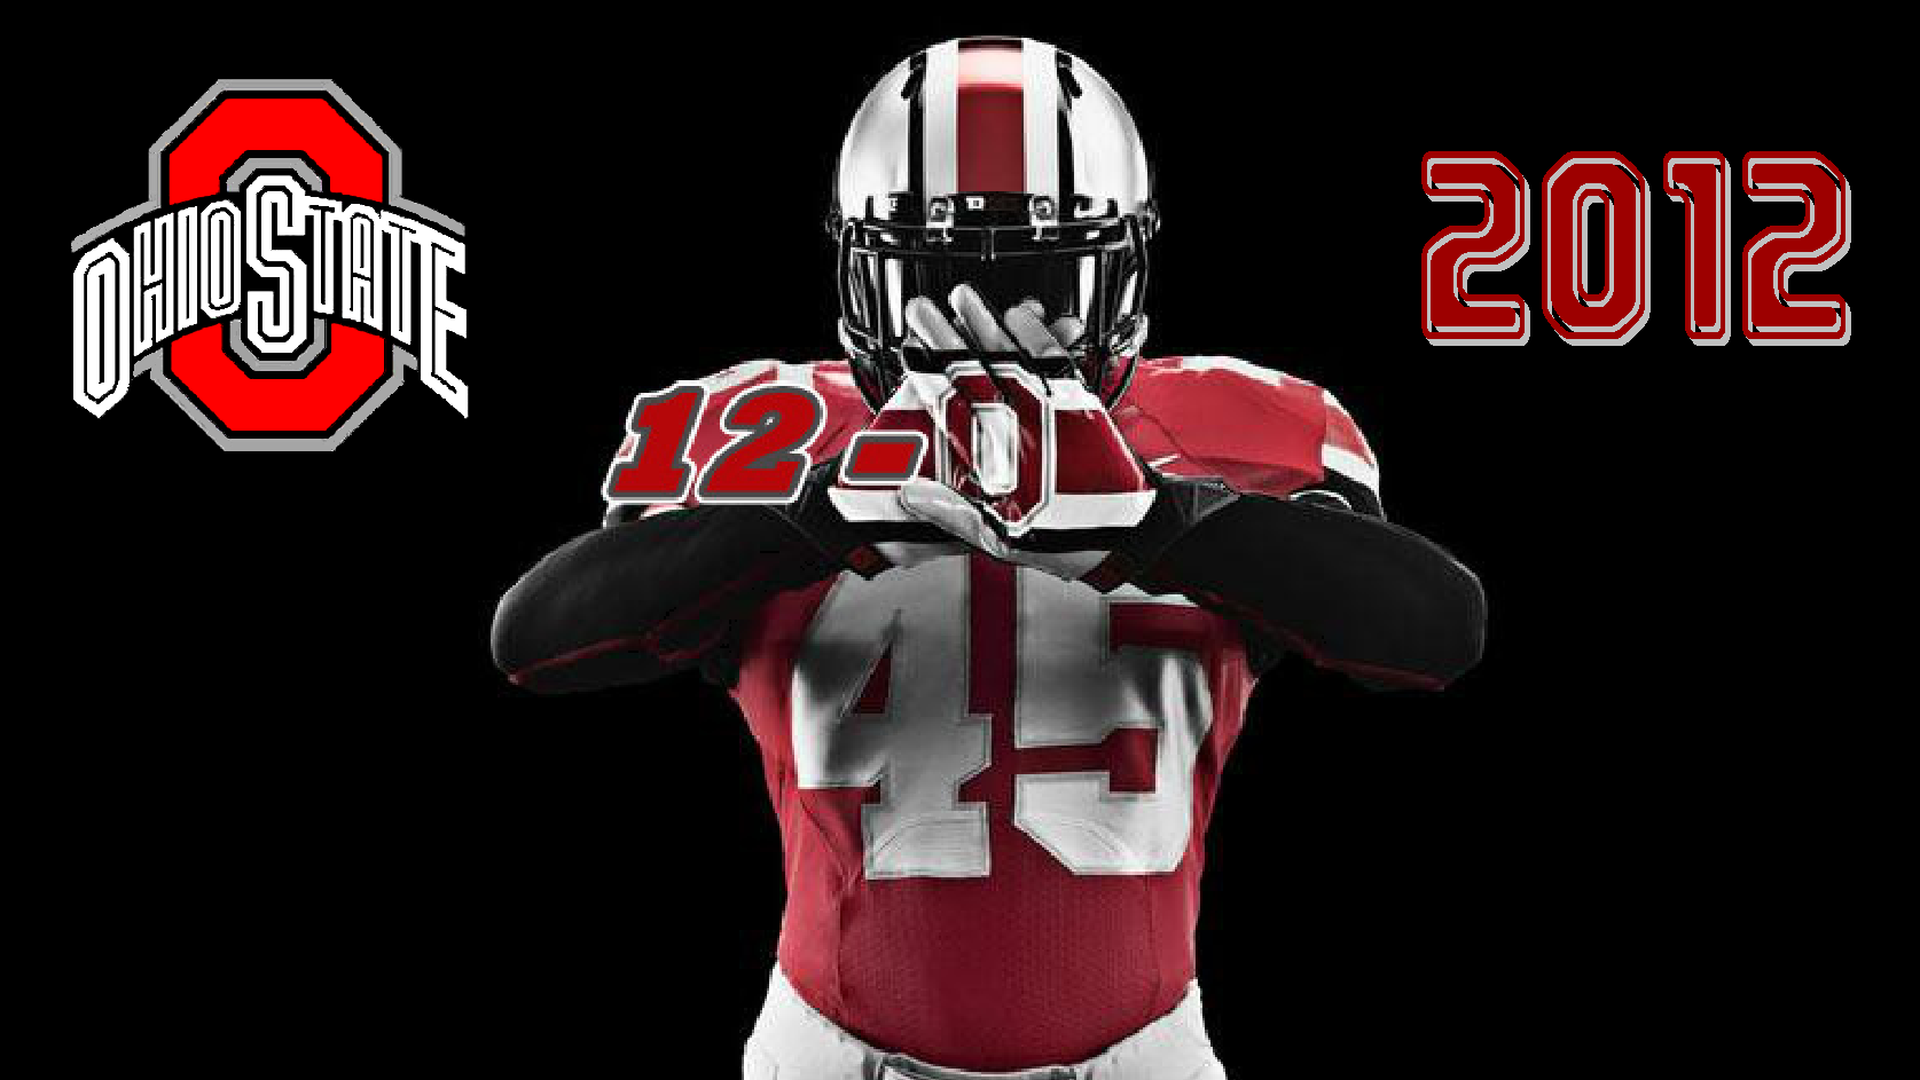 Ohio State Buckeyes Football Wallpapers 1920x1080